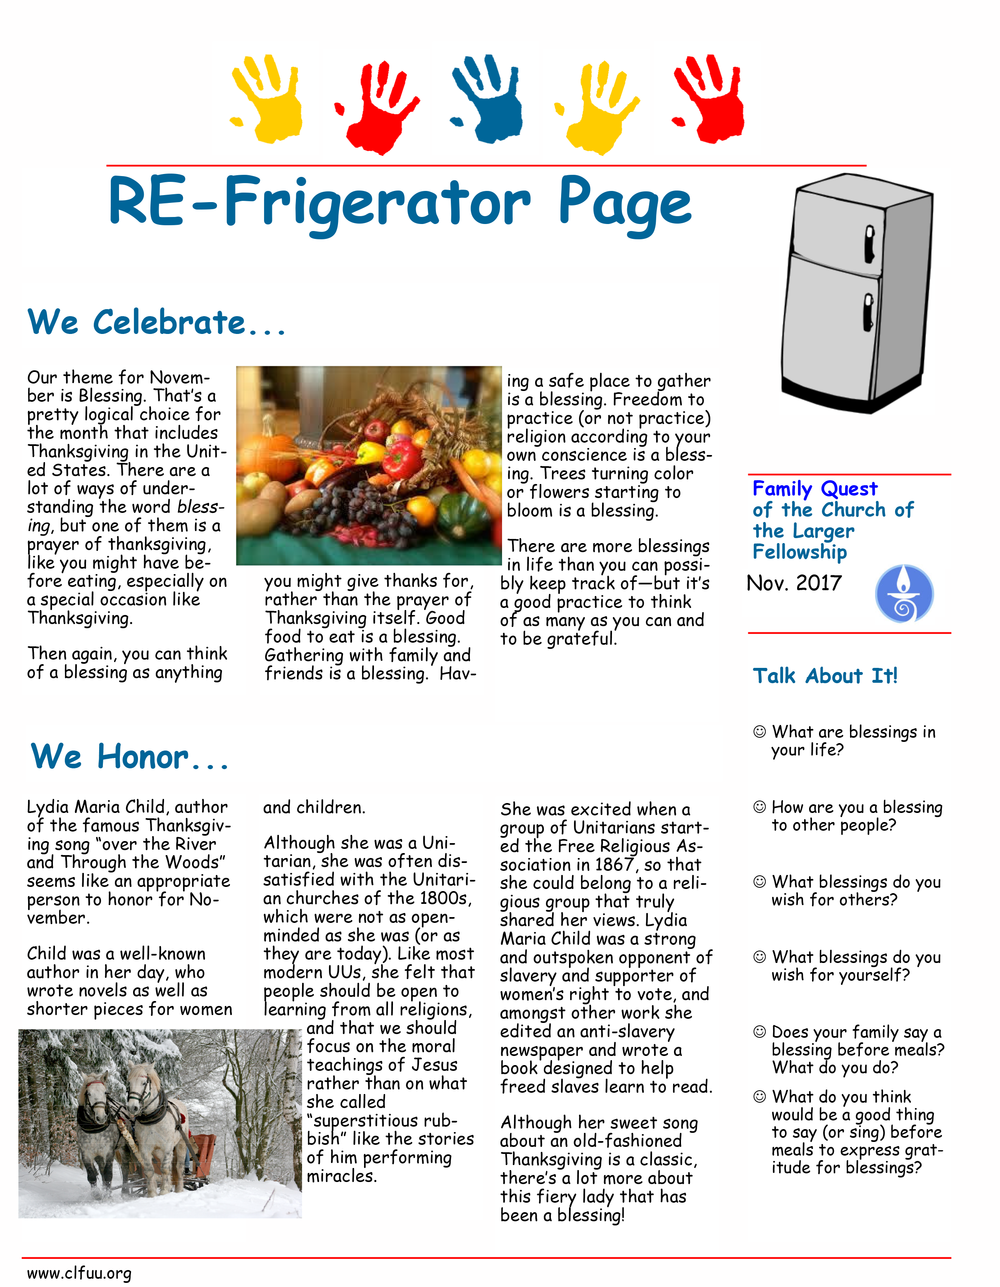 REFrigerator_Page_11-17-1.png